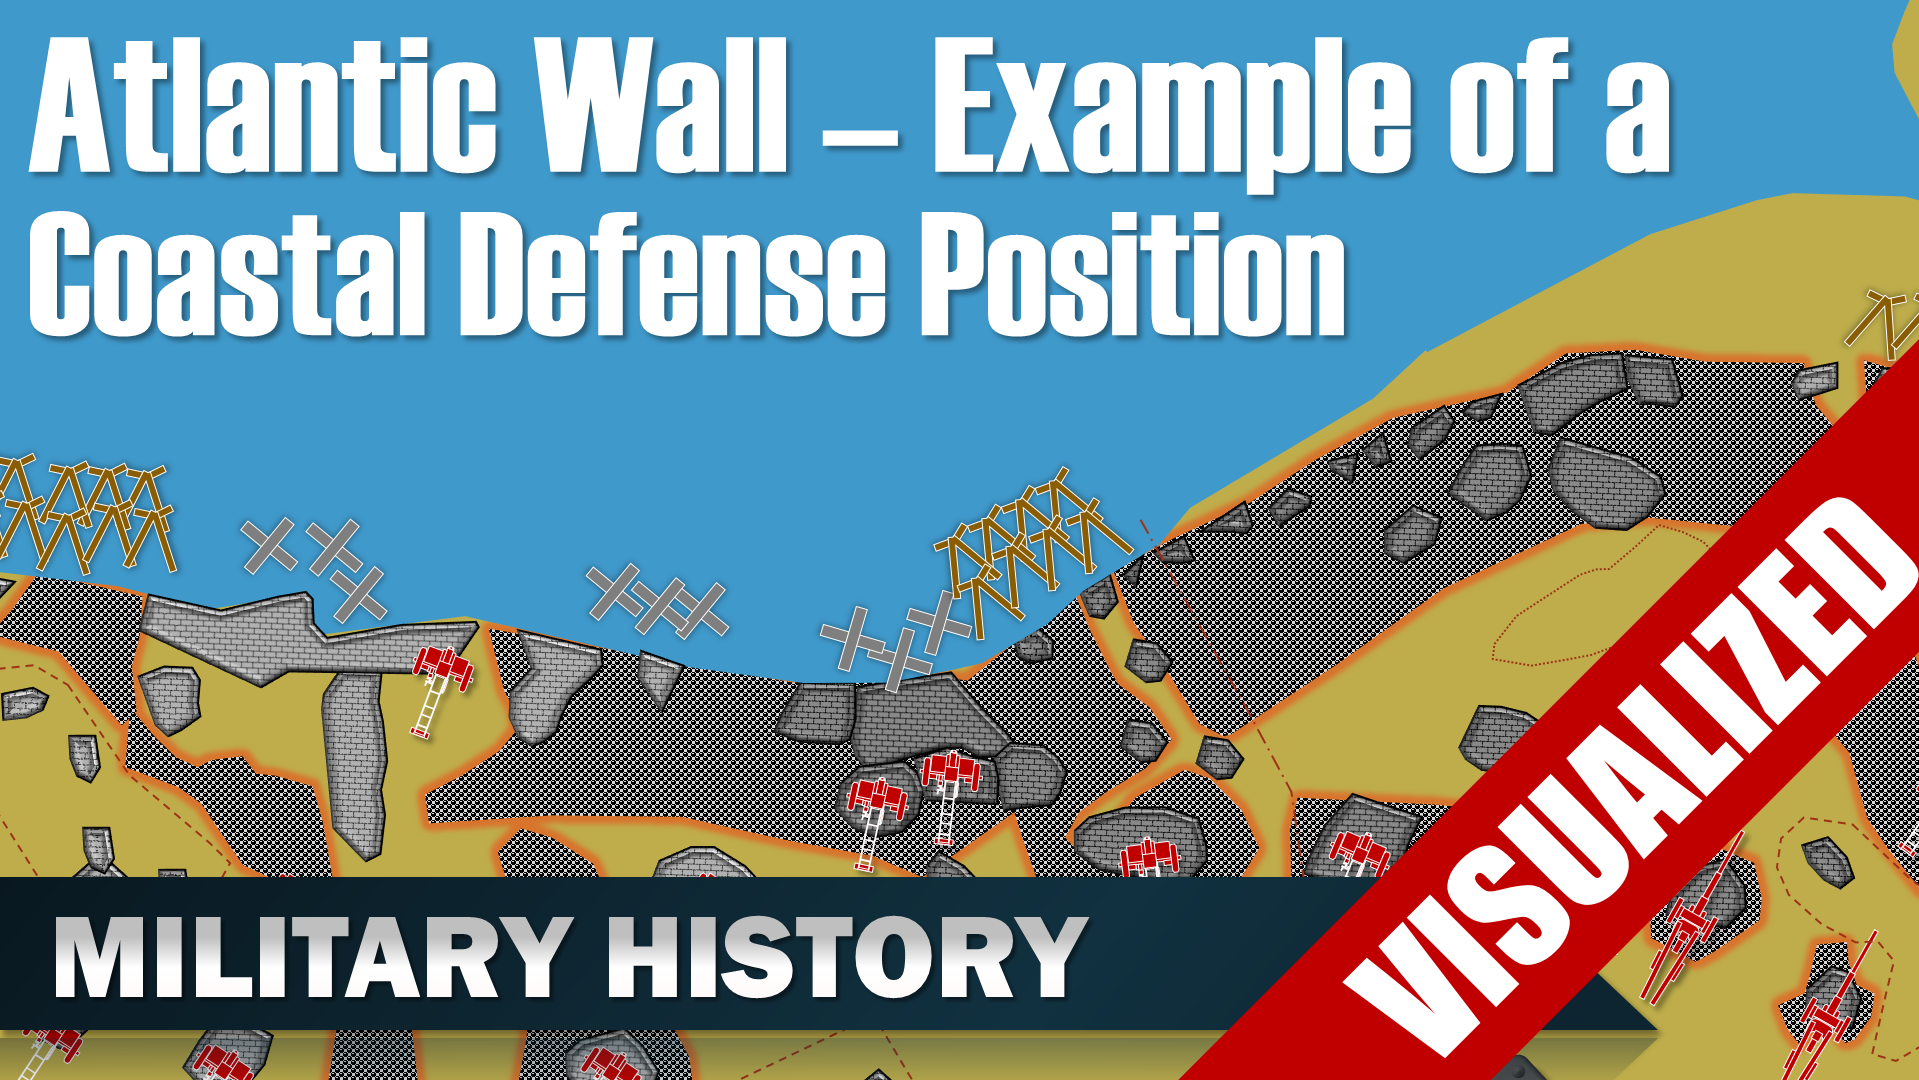 Atlantic Wall – Example of a Coastal Defense Position (Atlantikwall)